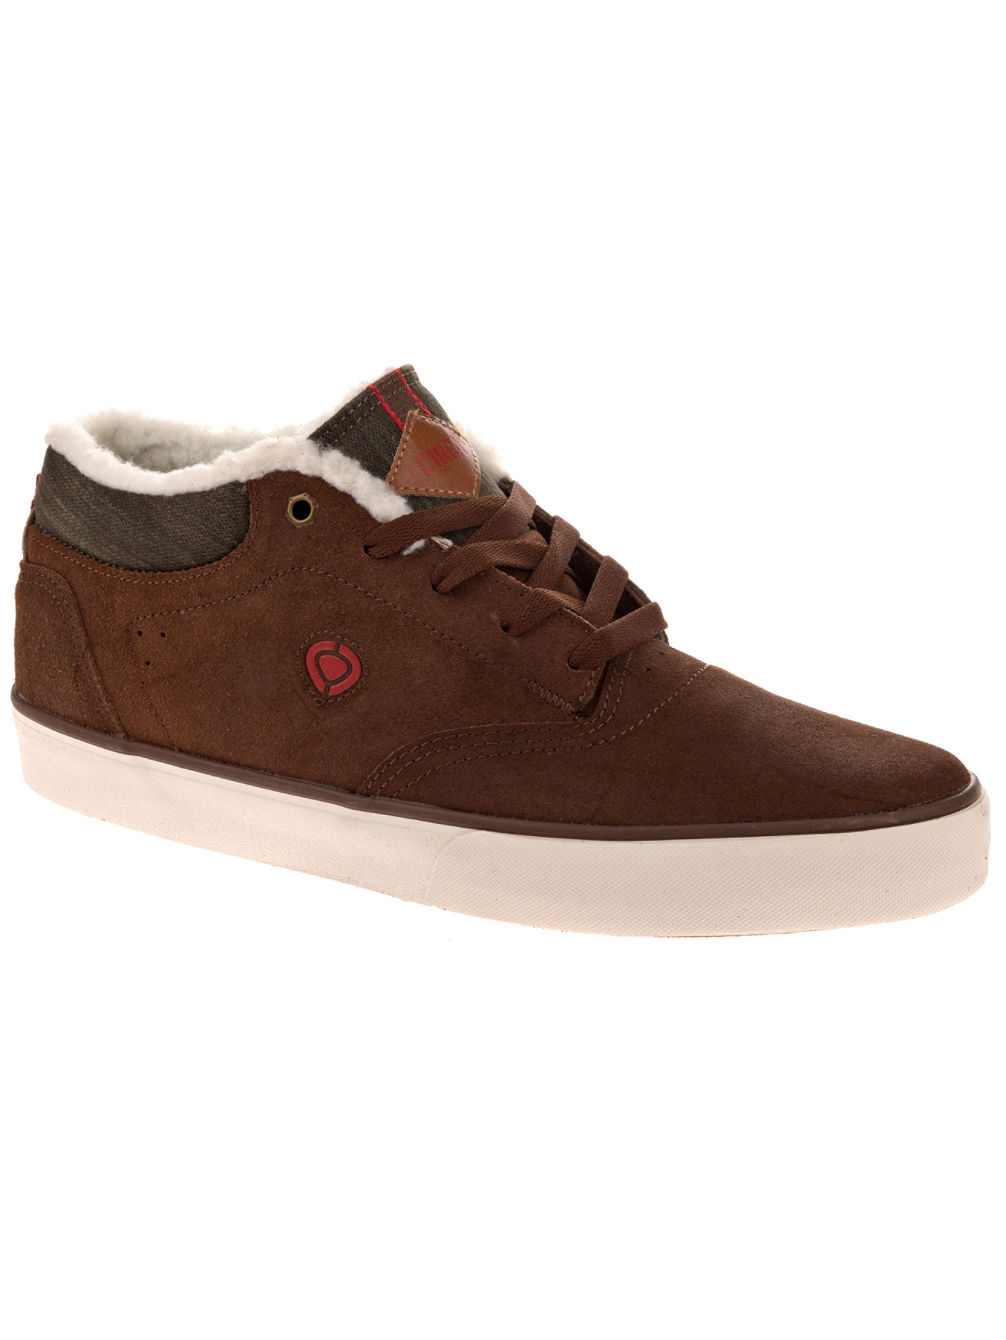 Lakota SE Shoes